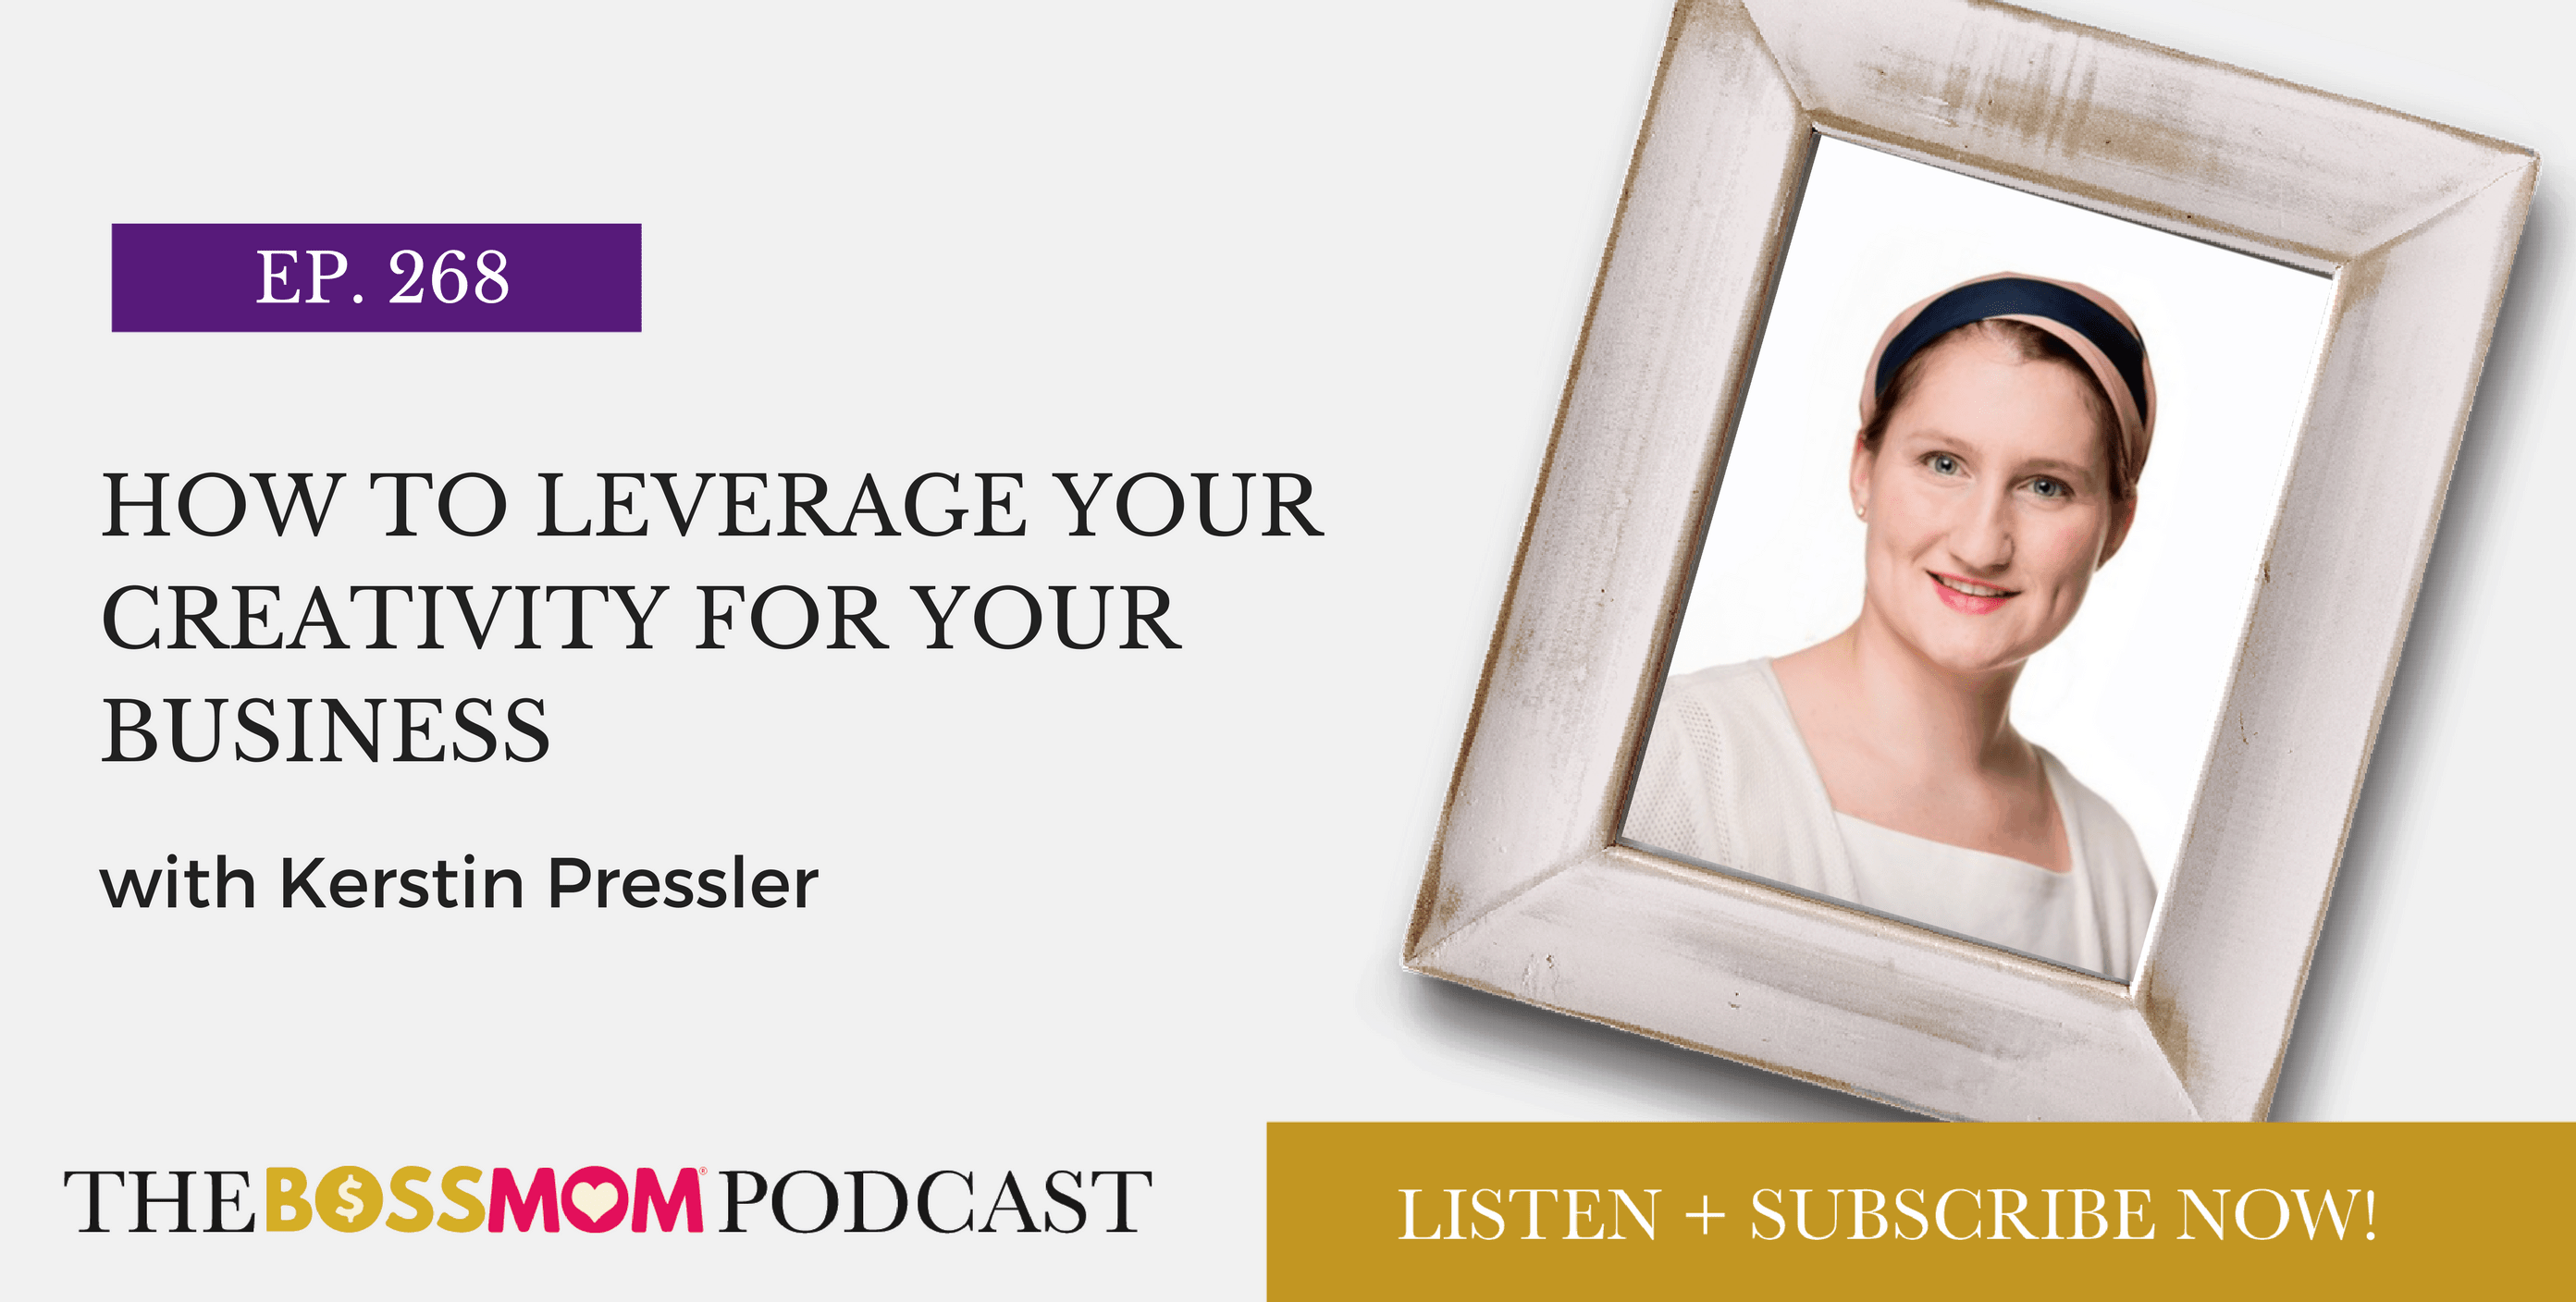 Episode 268: How to Leverage Your Creativity for Your Business with Kerstin de Boer